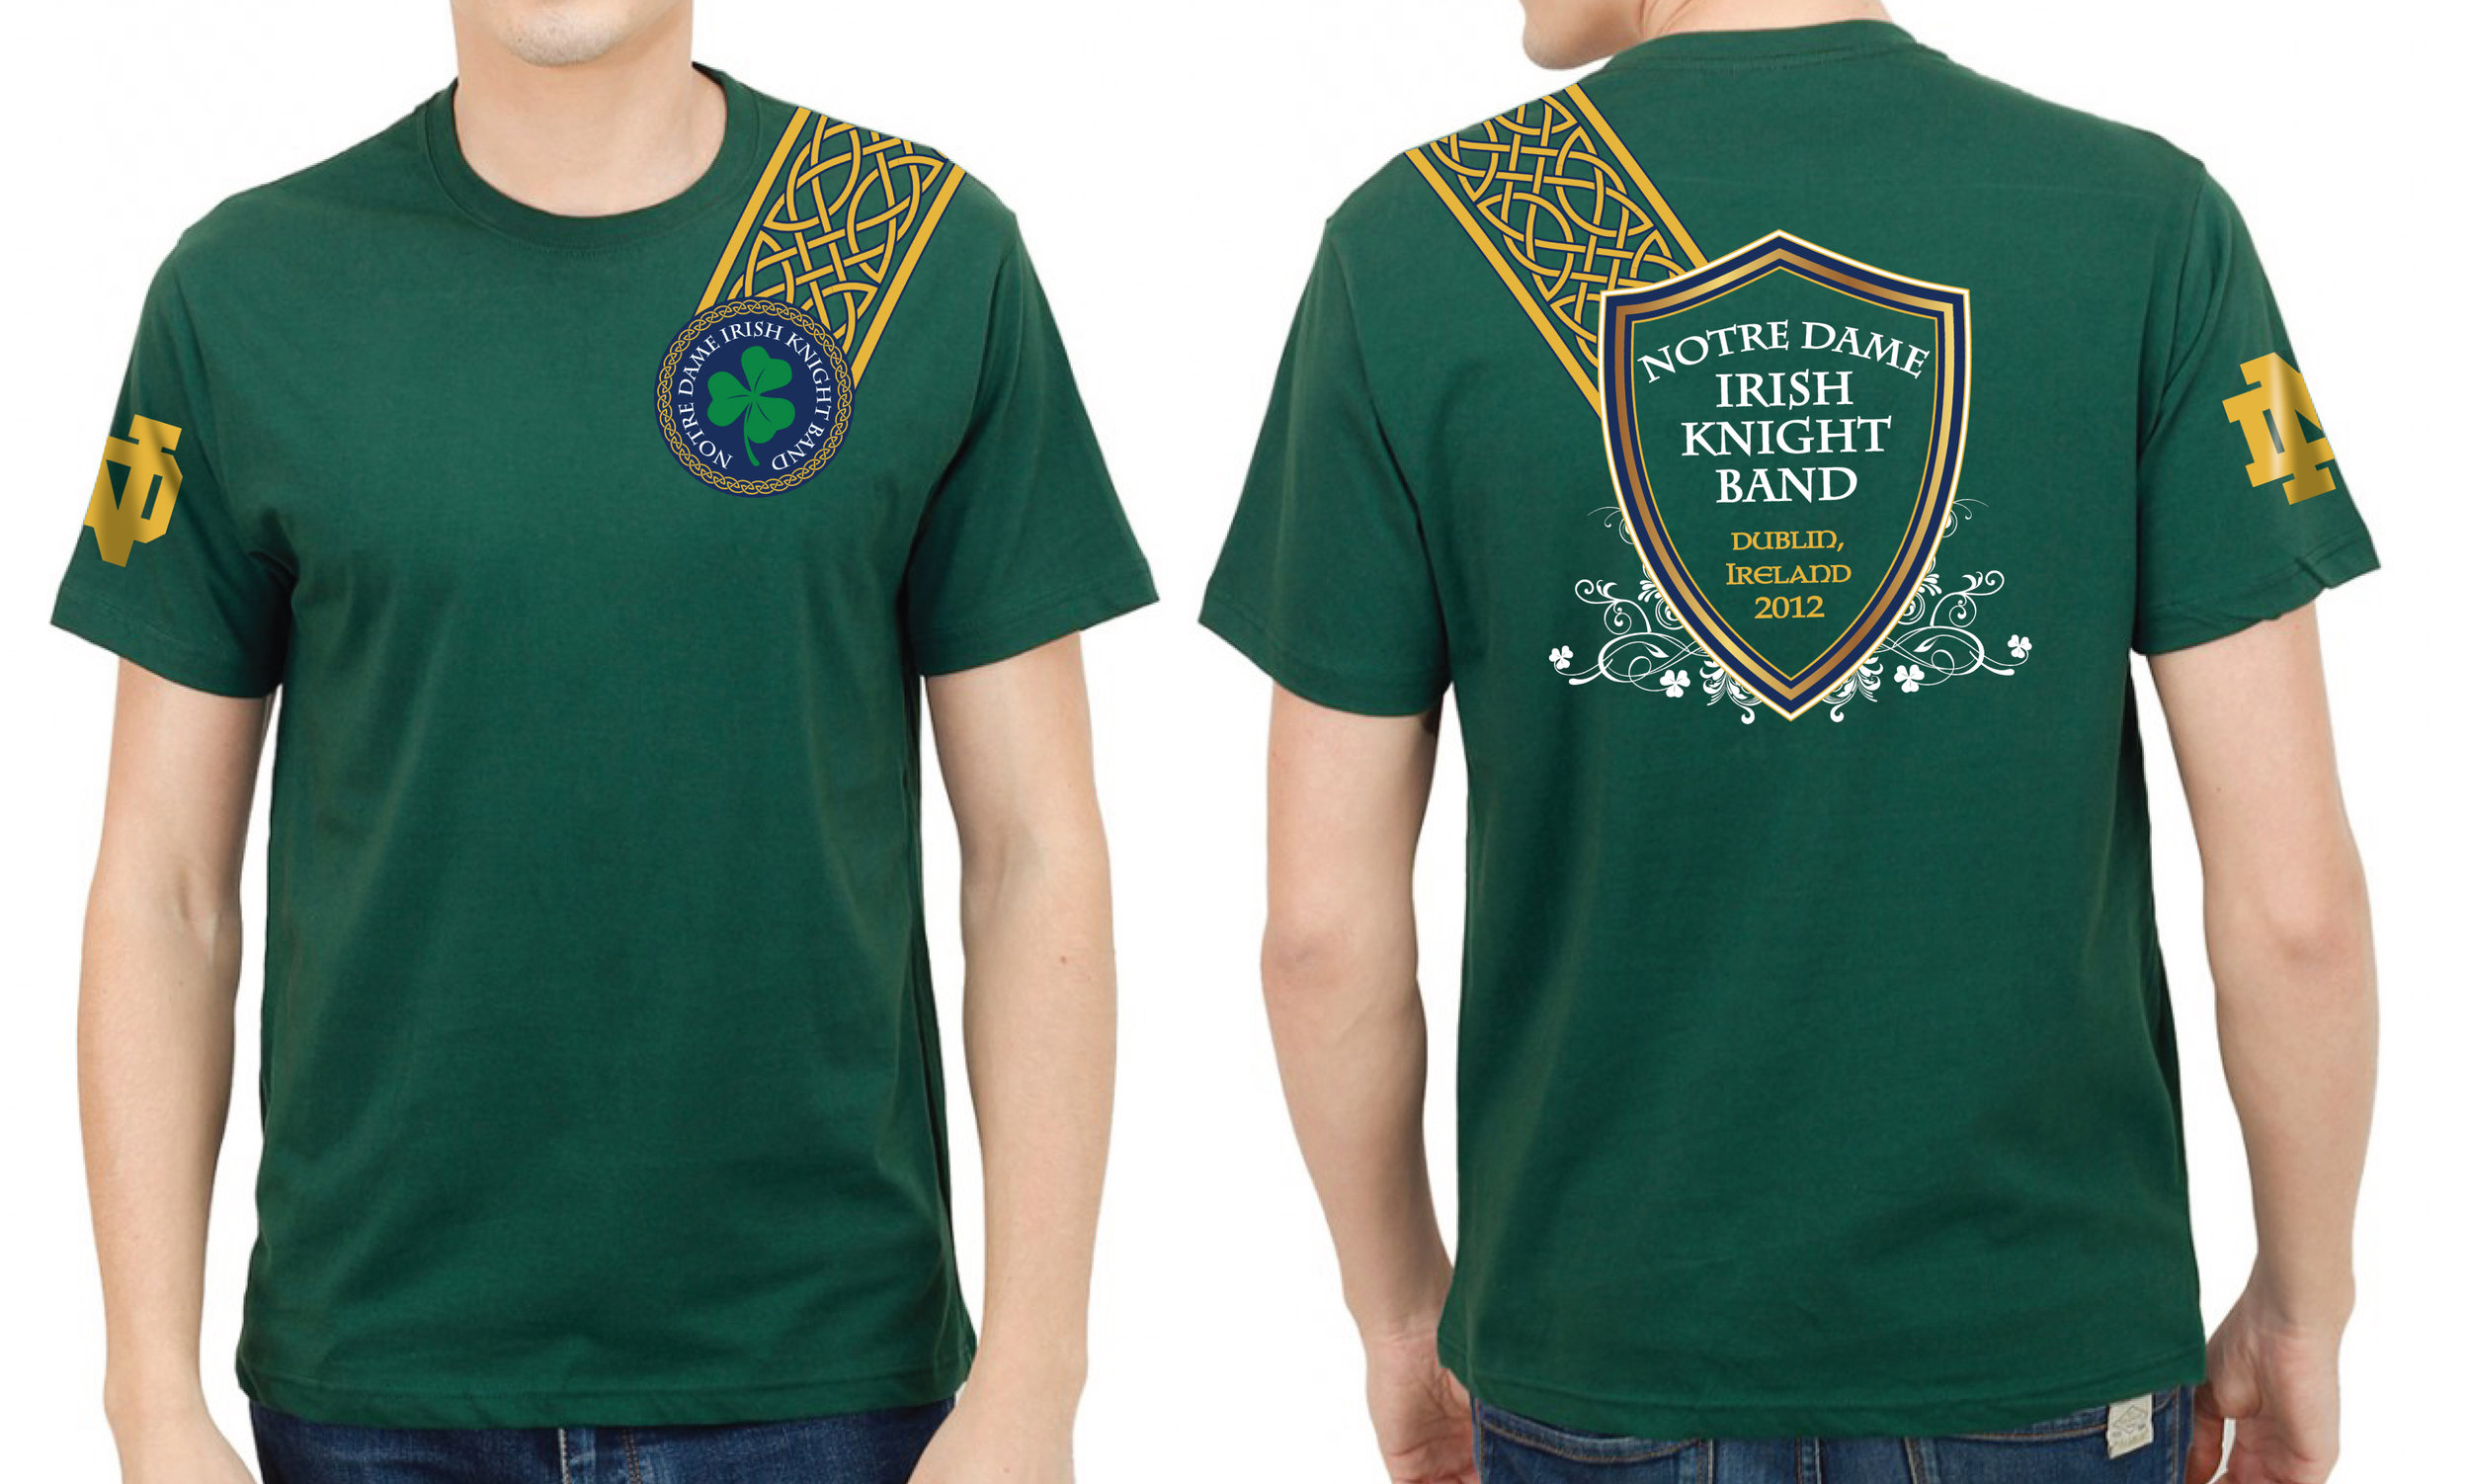 Notre Dame Irish Knight Band Event Tee